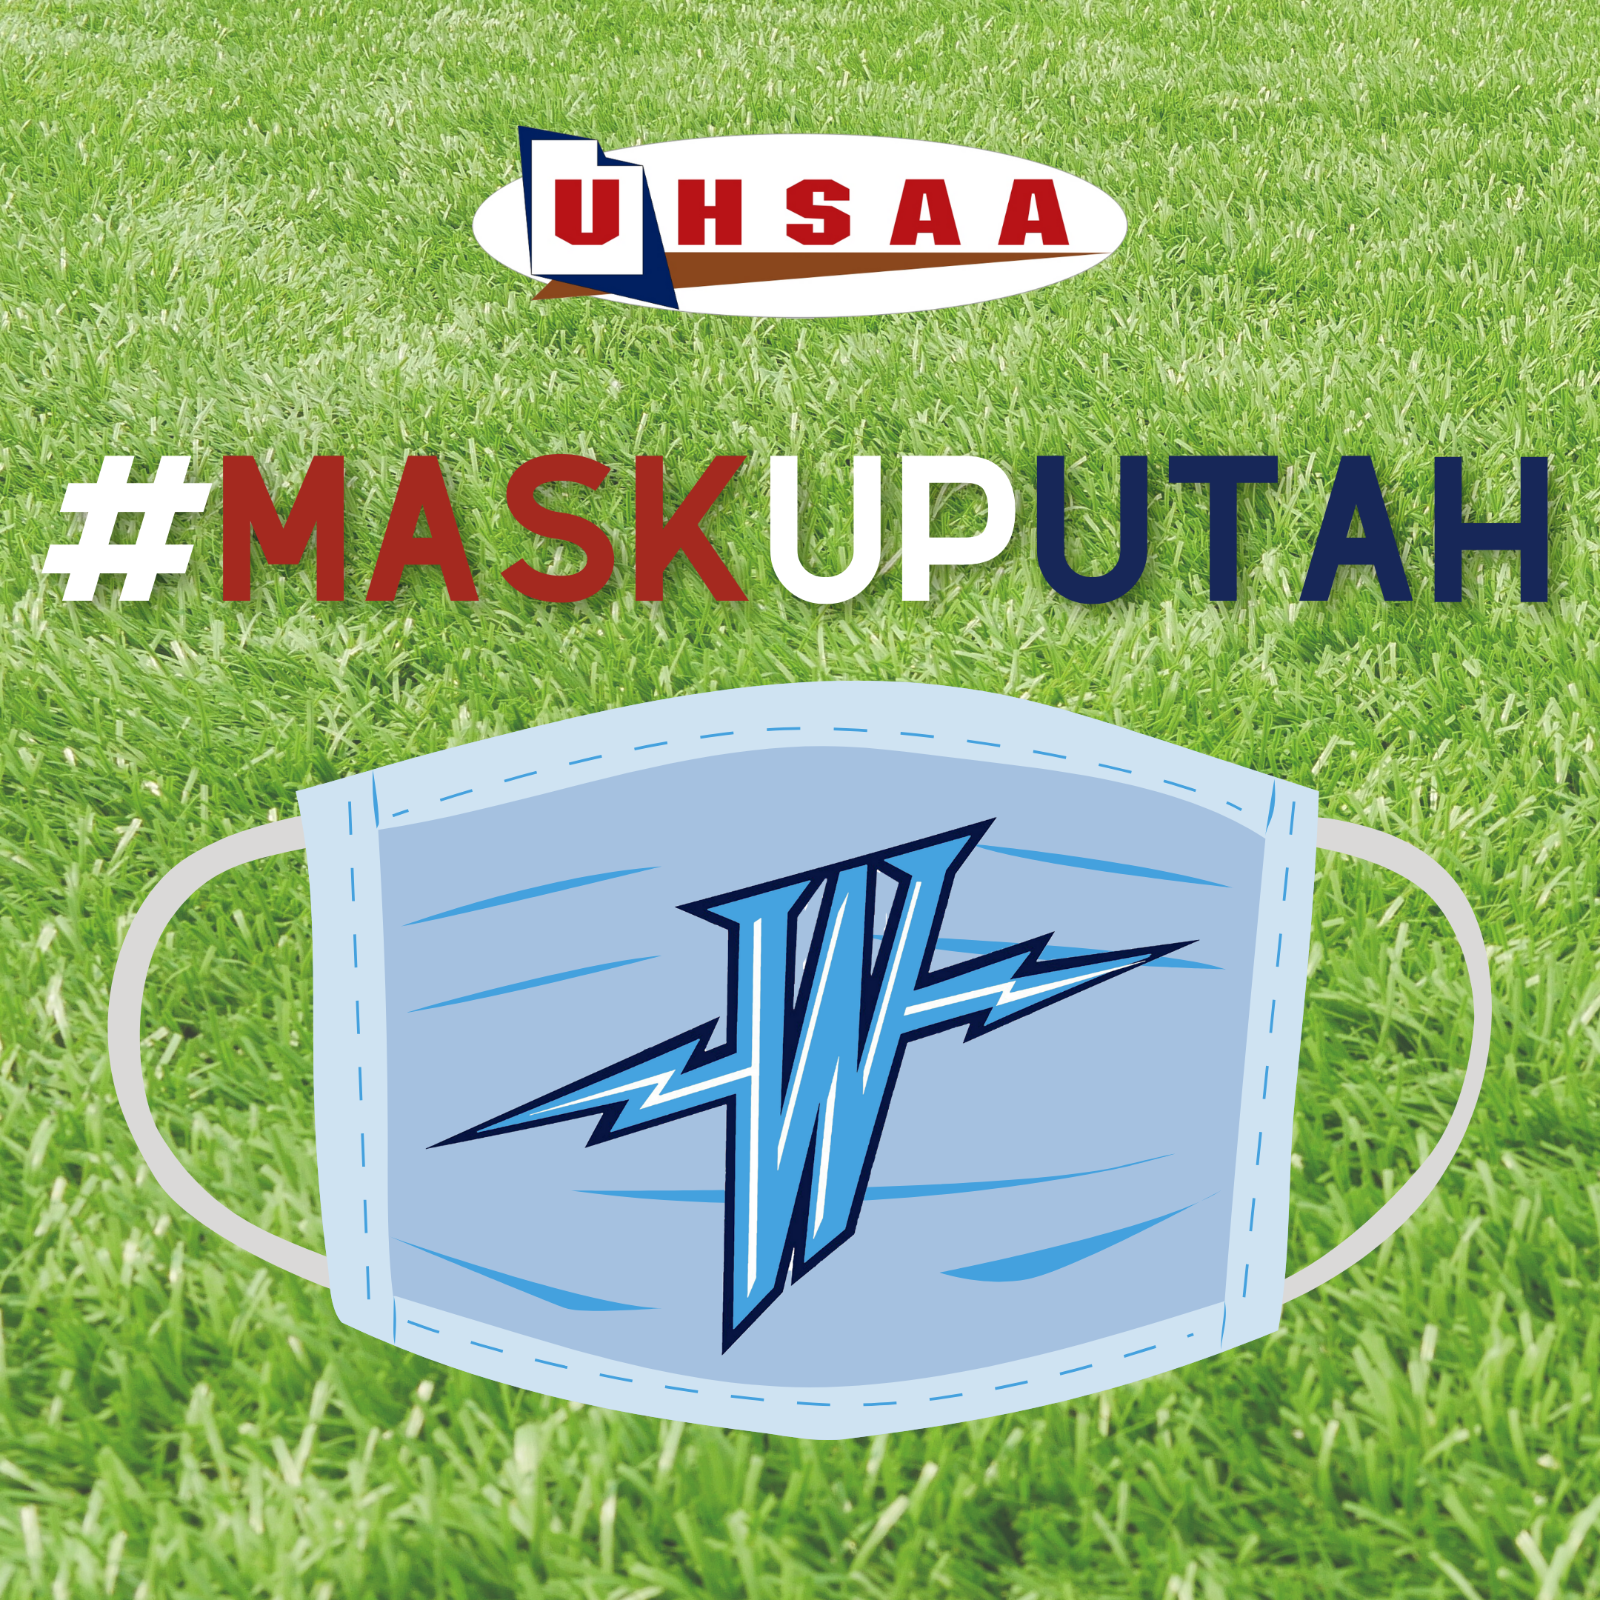 WESTLAKE/UHSAA MASK-UP AND ATHLETIC EVENT INFORMATION